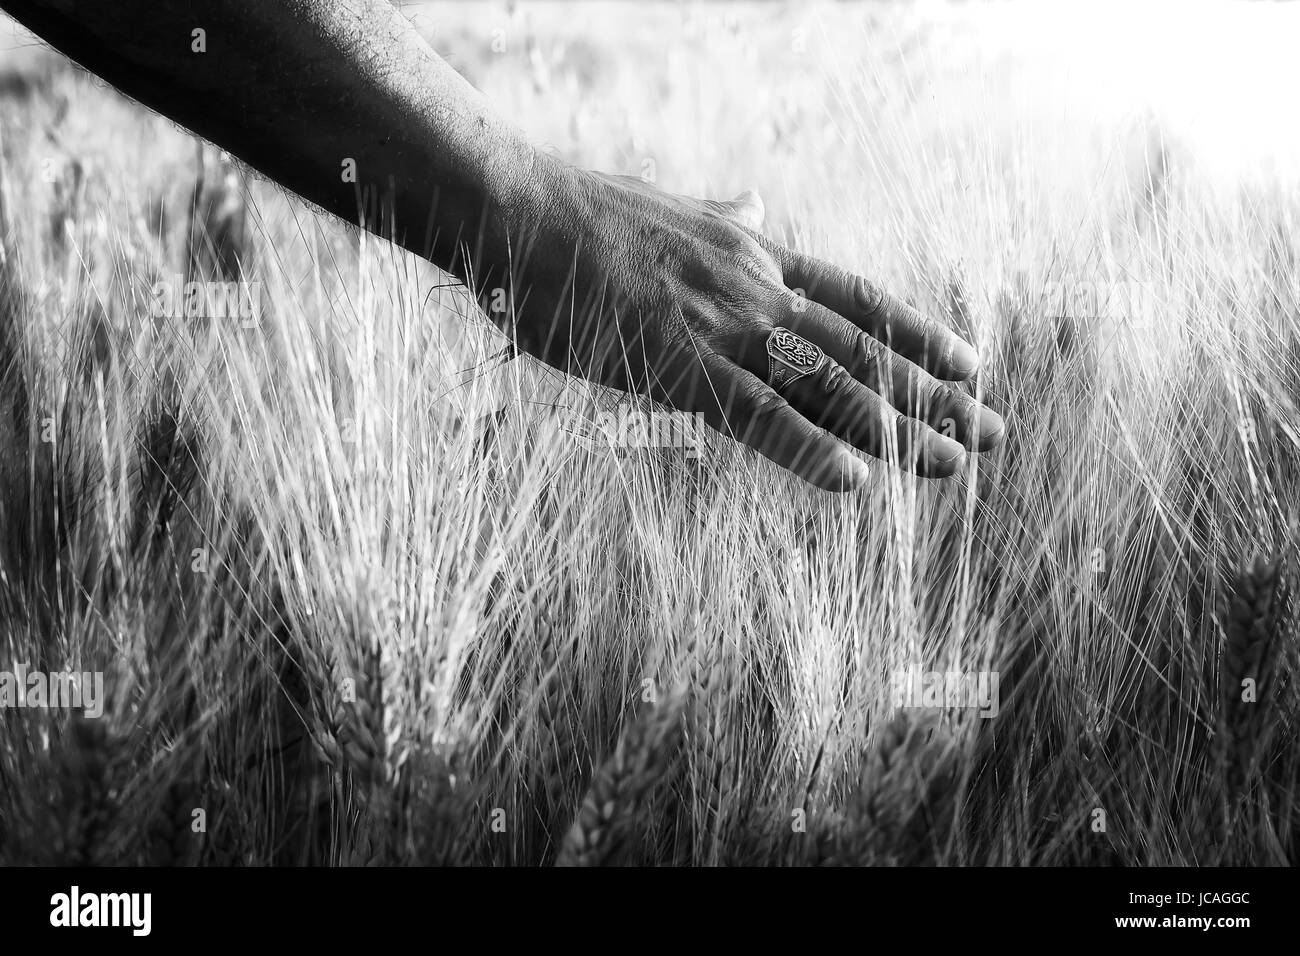 Field of wheat cultivated, and one hand caresses the stems of wheat in backlight. - Stock Image